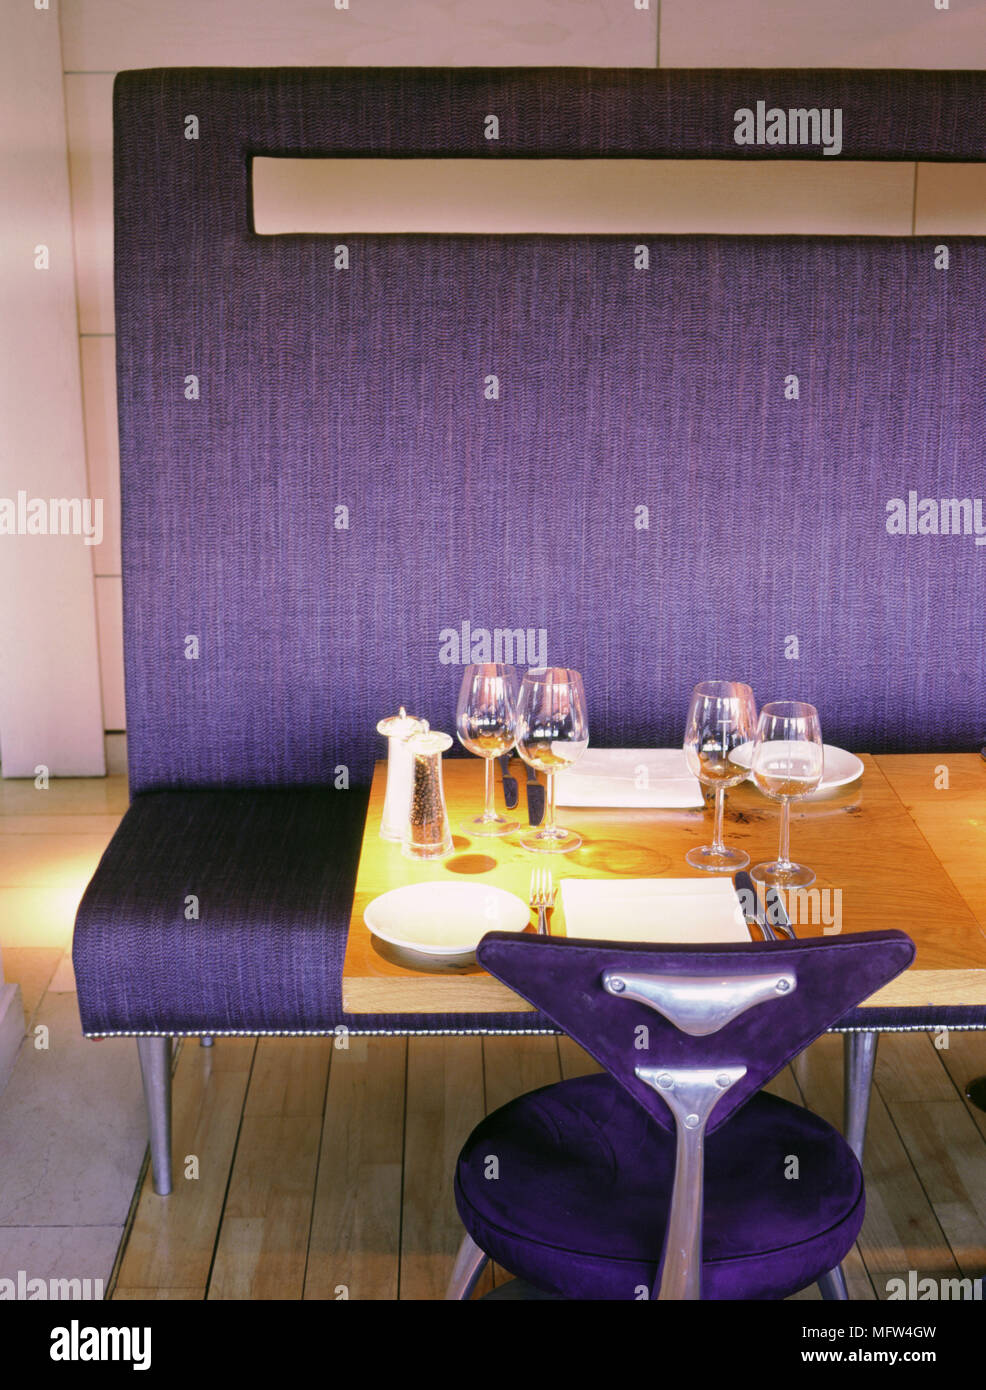 Detail Of A Table In The Tower Restaurant With Table Settings And Banquette Seating Stock Photo Alamy